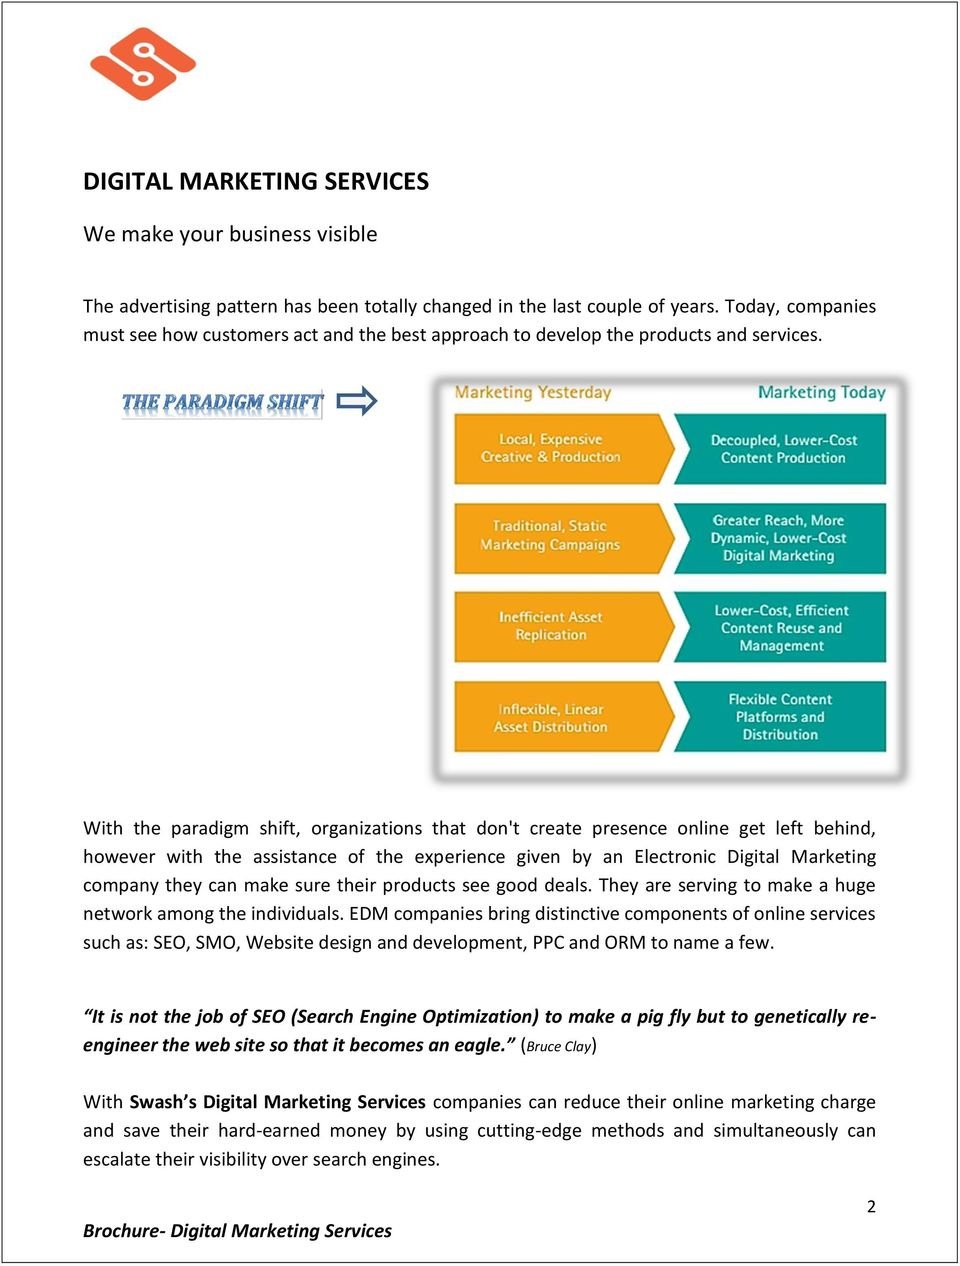 With the paradigm shift, organizations that don't create presence online get left behind, however with the assistance of the experience given by an Electronic Digital Marketing company they can make